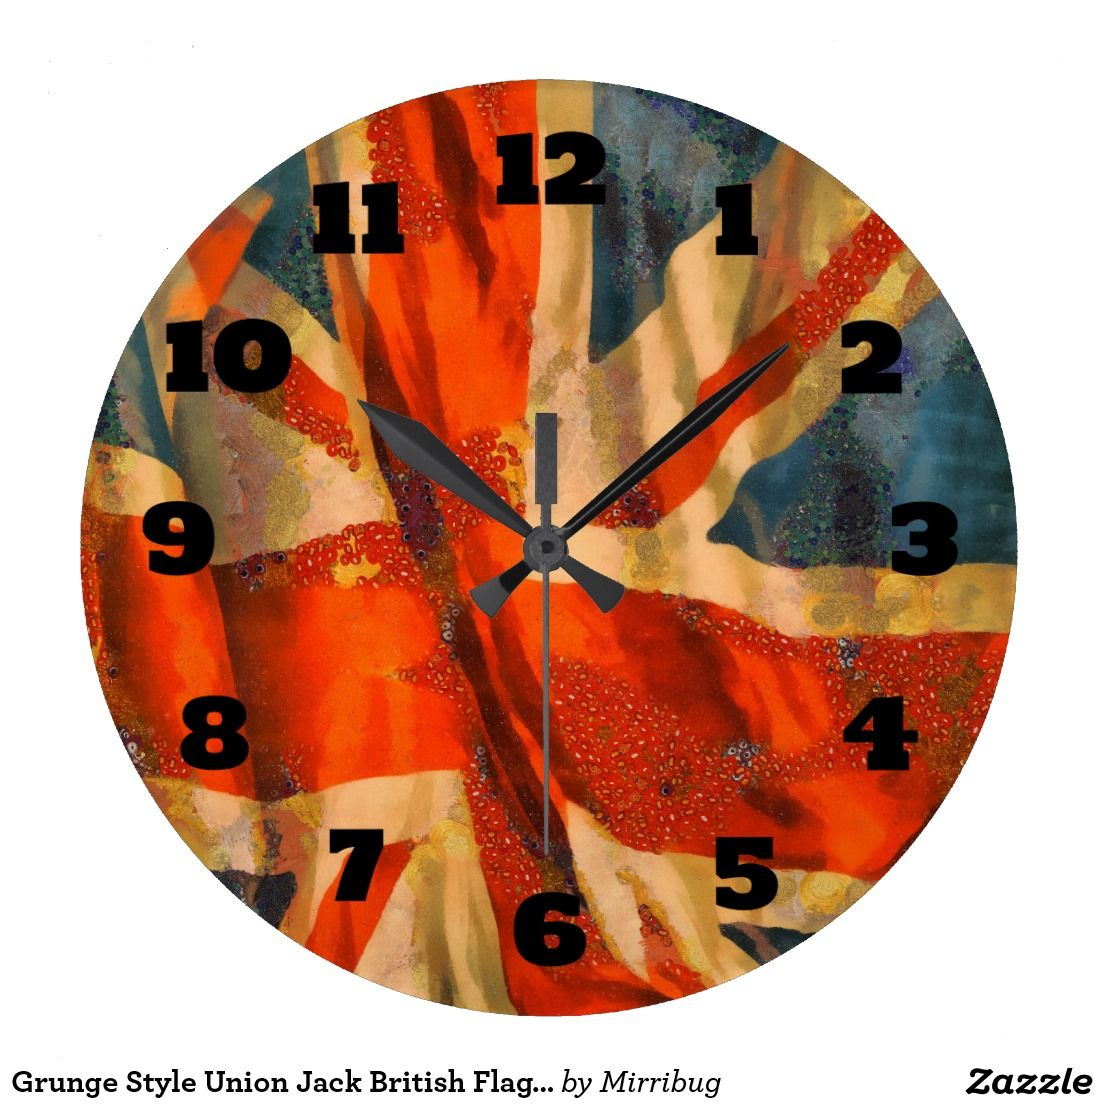 Grunge style union jack british flag illustration large clock grunge style union jack british flag illustration large clock amipublicfo Images